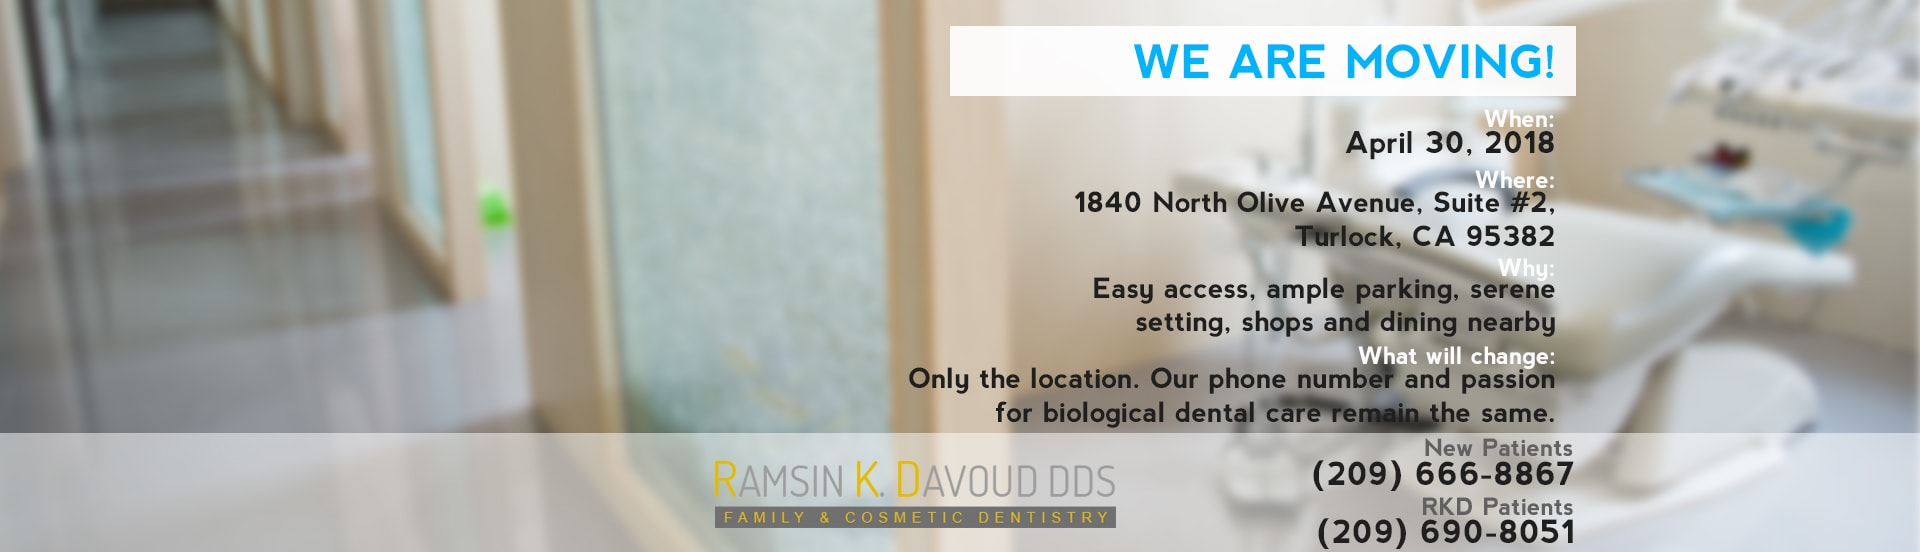 Ramsin K. Davoud DDS Moving to New Location